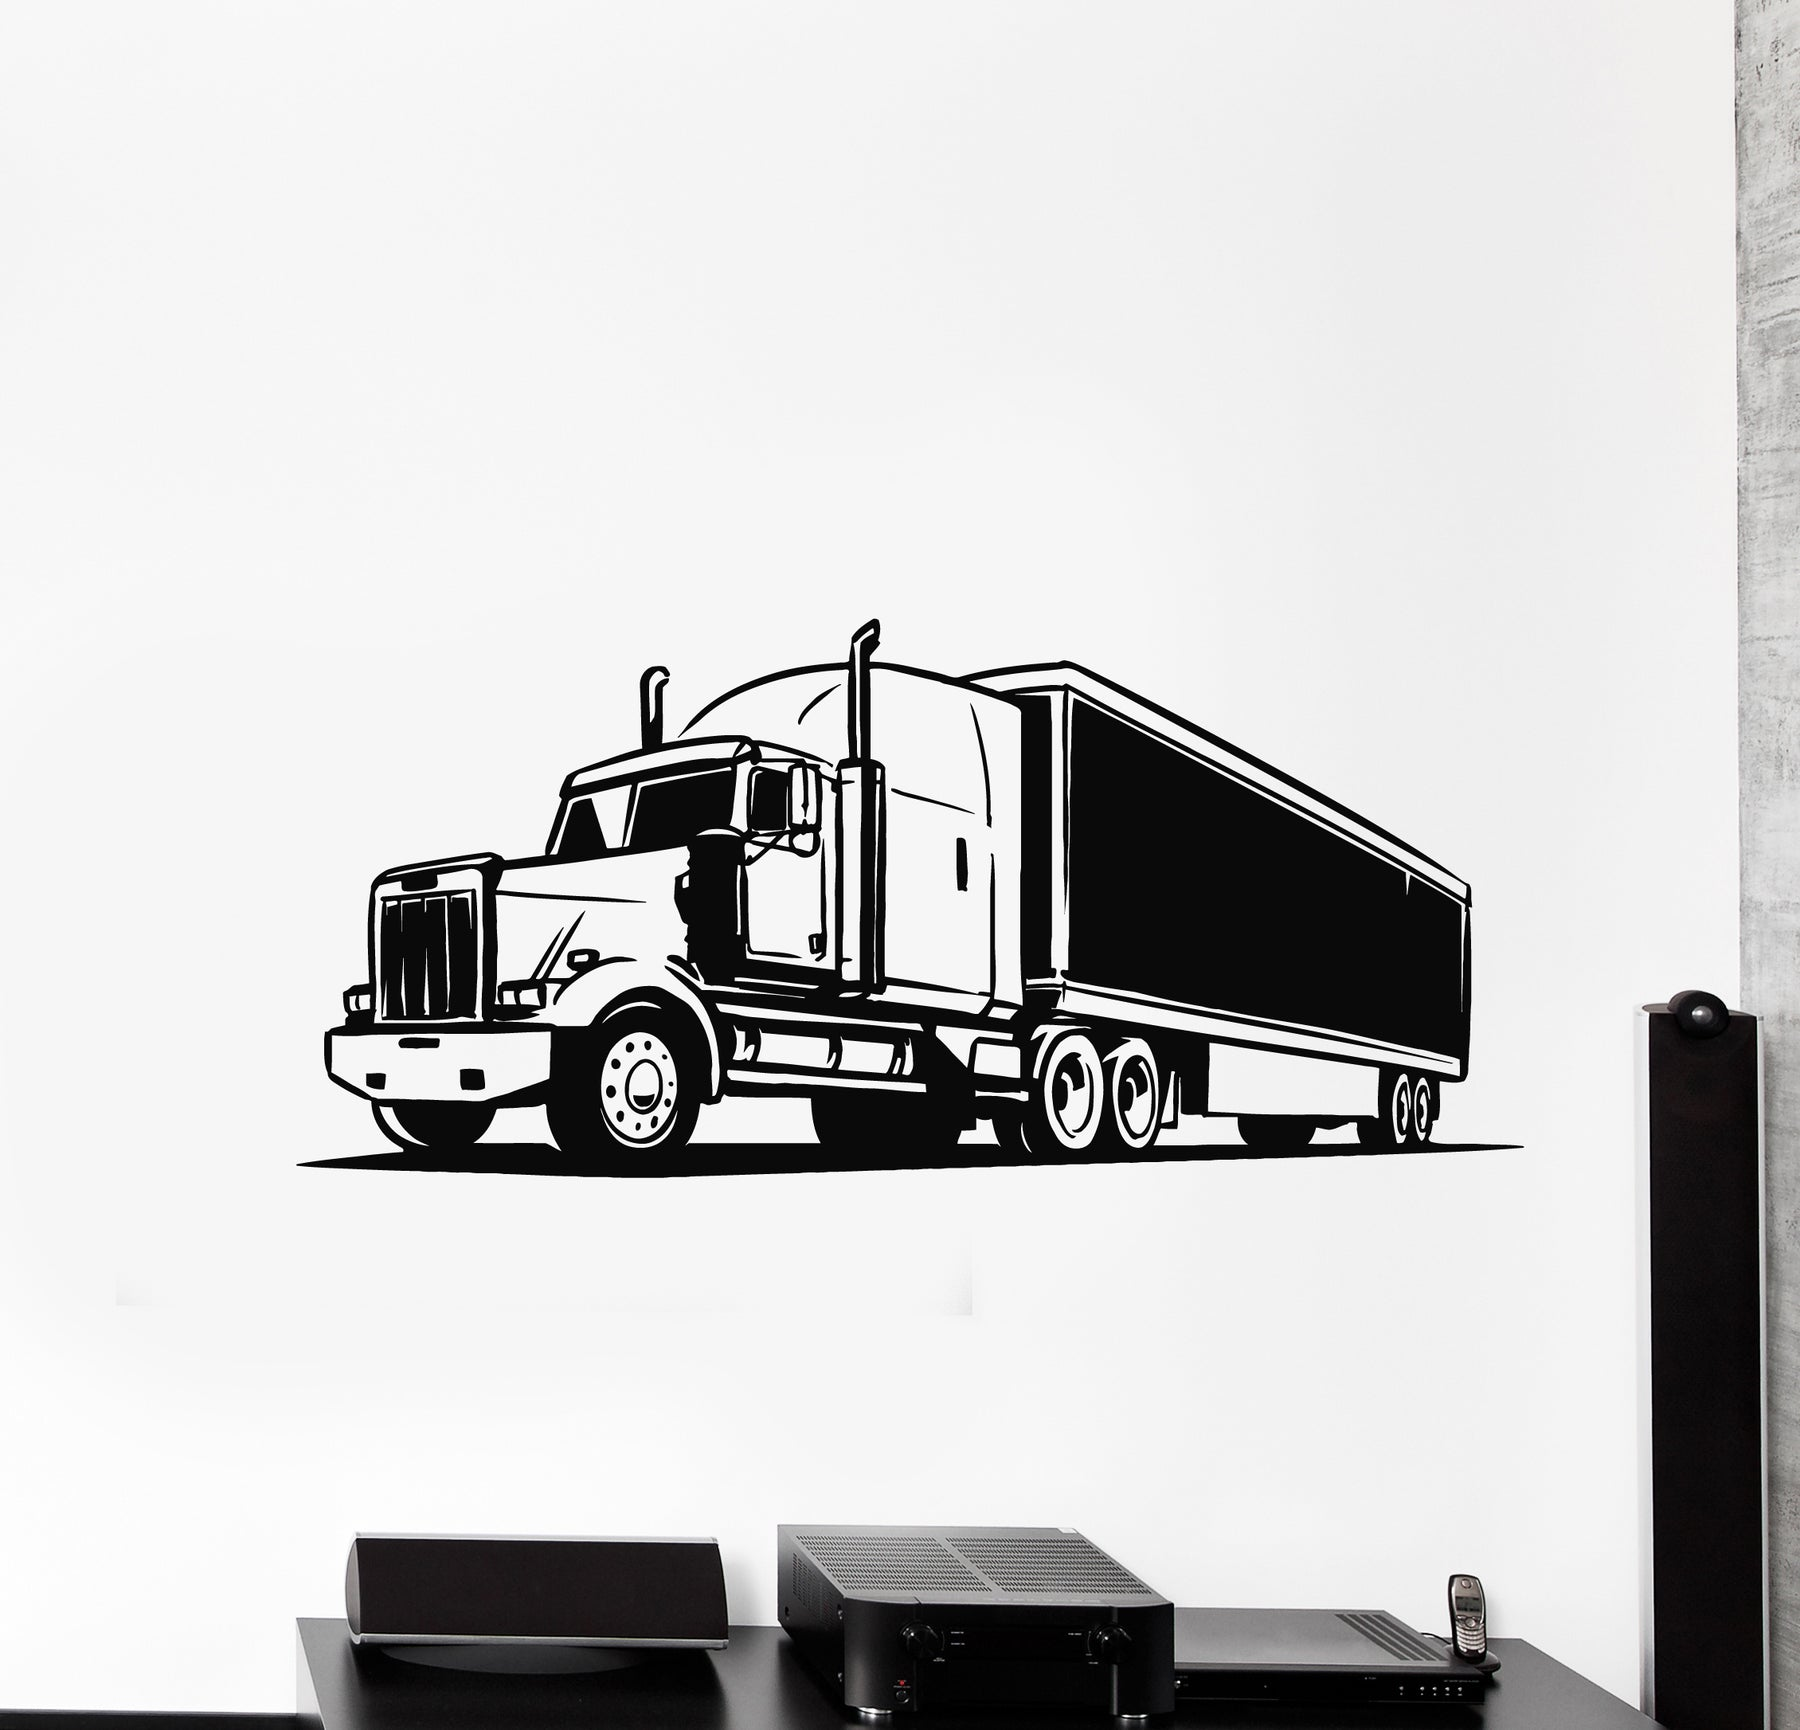 Vinyl Wall Decal Truck Car Transport Decor For Man Decor Stickers Mural (g664)